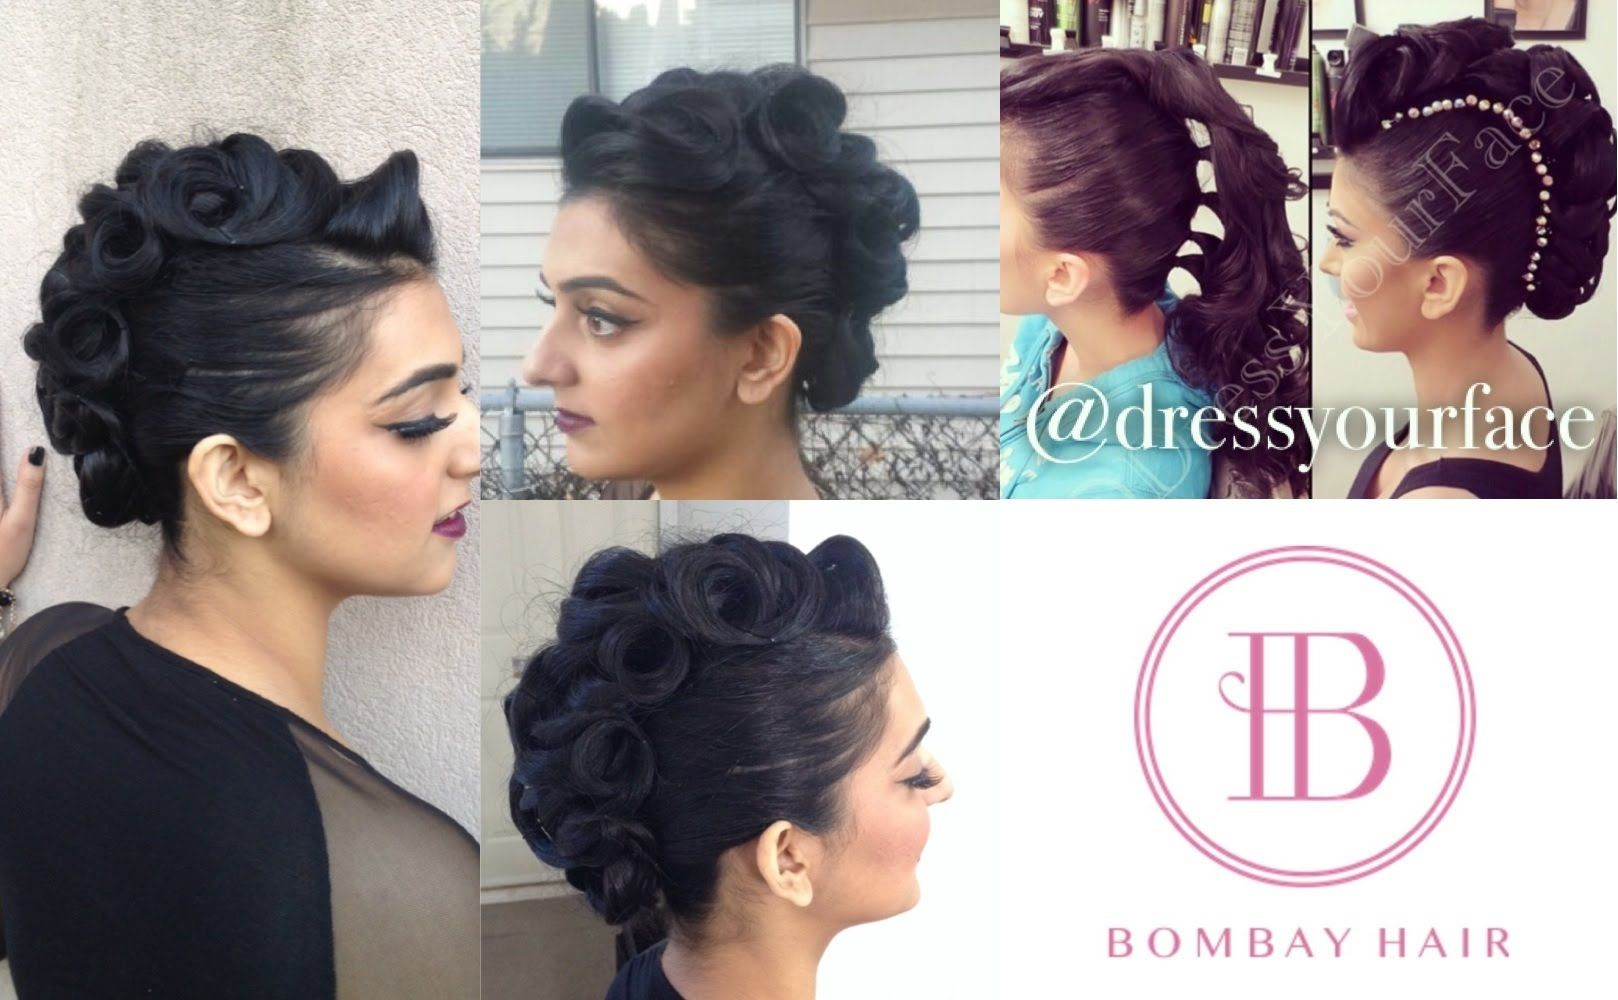 DressYourFace Inspired Faux Hawk/Mohawk Hairstyle Tutorial ft. Bombay Hair